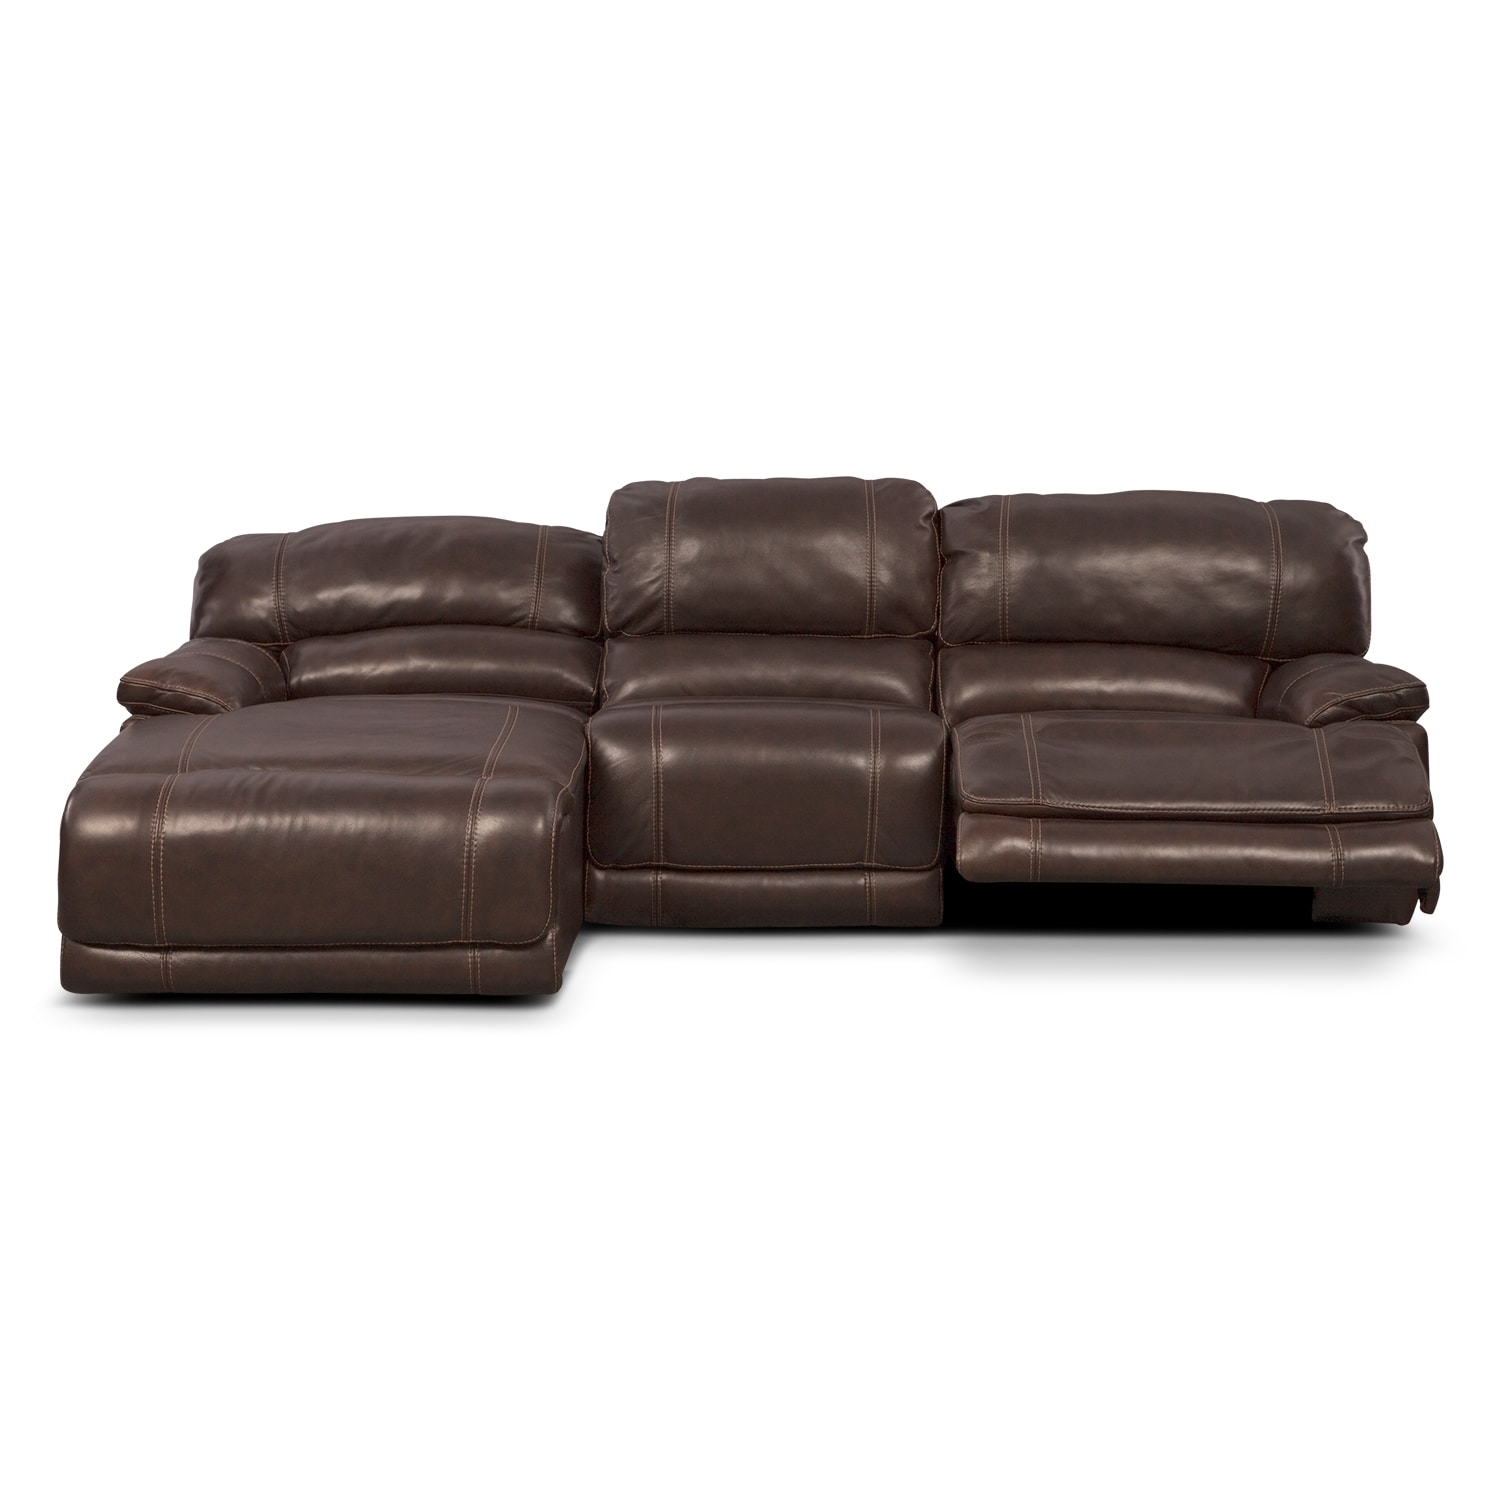 St malo 3 piece power reclining sectional with left for 3pc sectional with chaise